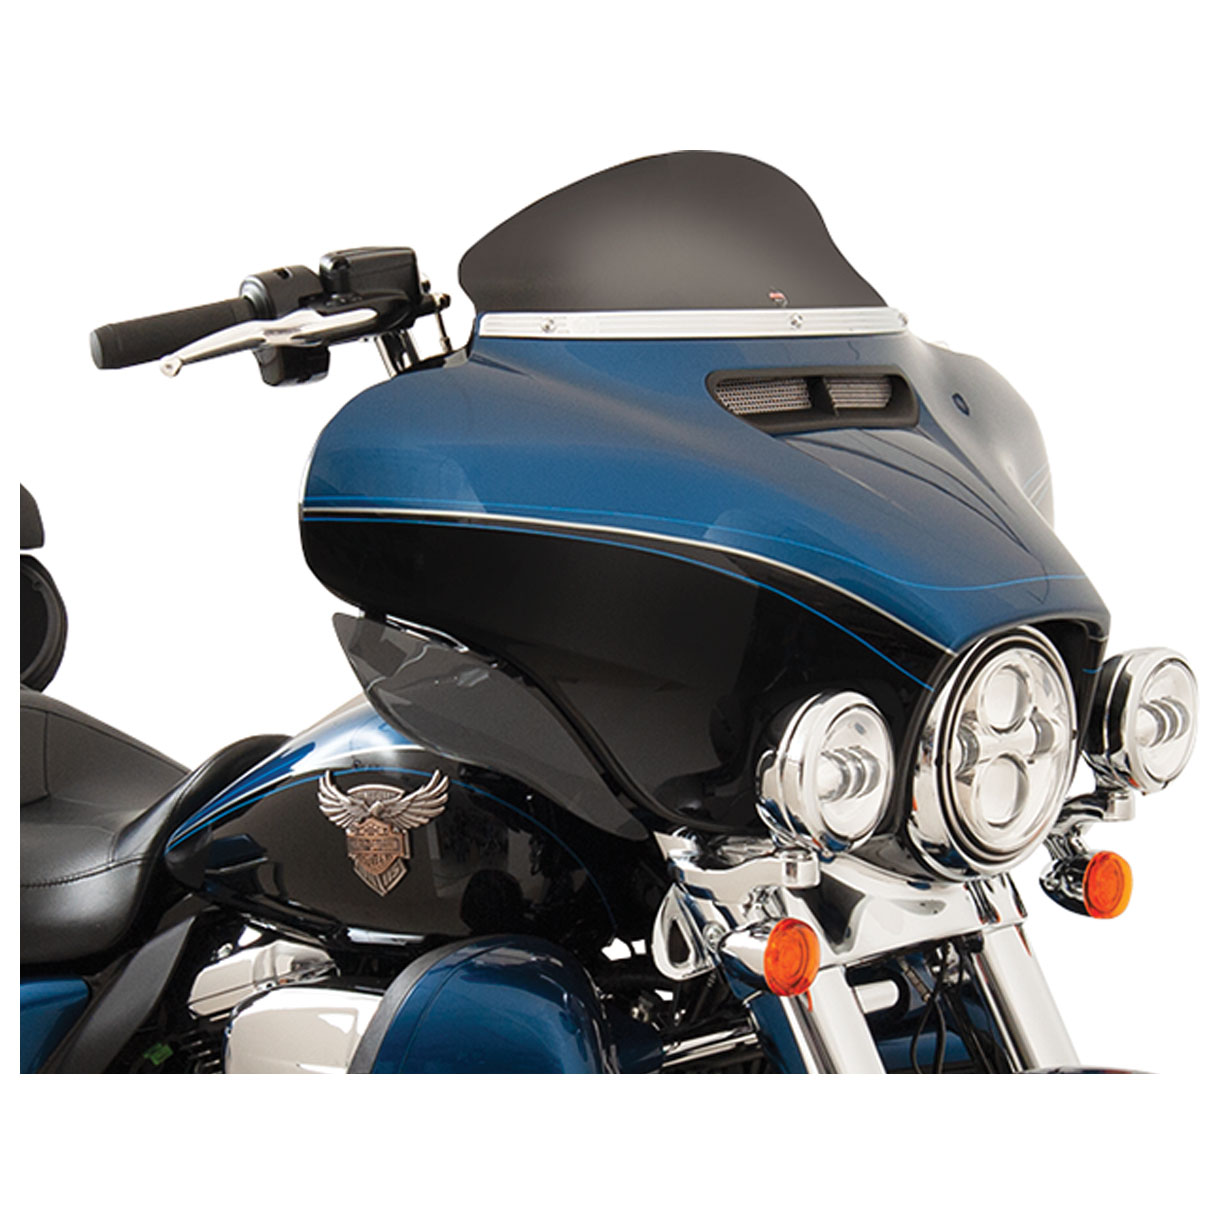 Klock Werks 5 Black Flare Windshield 2310-0571